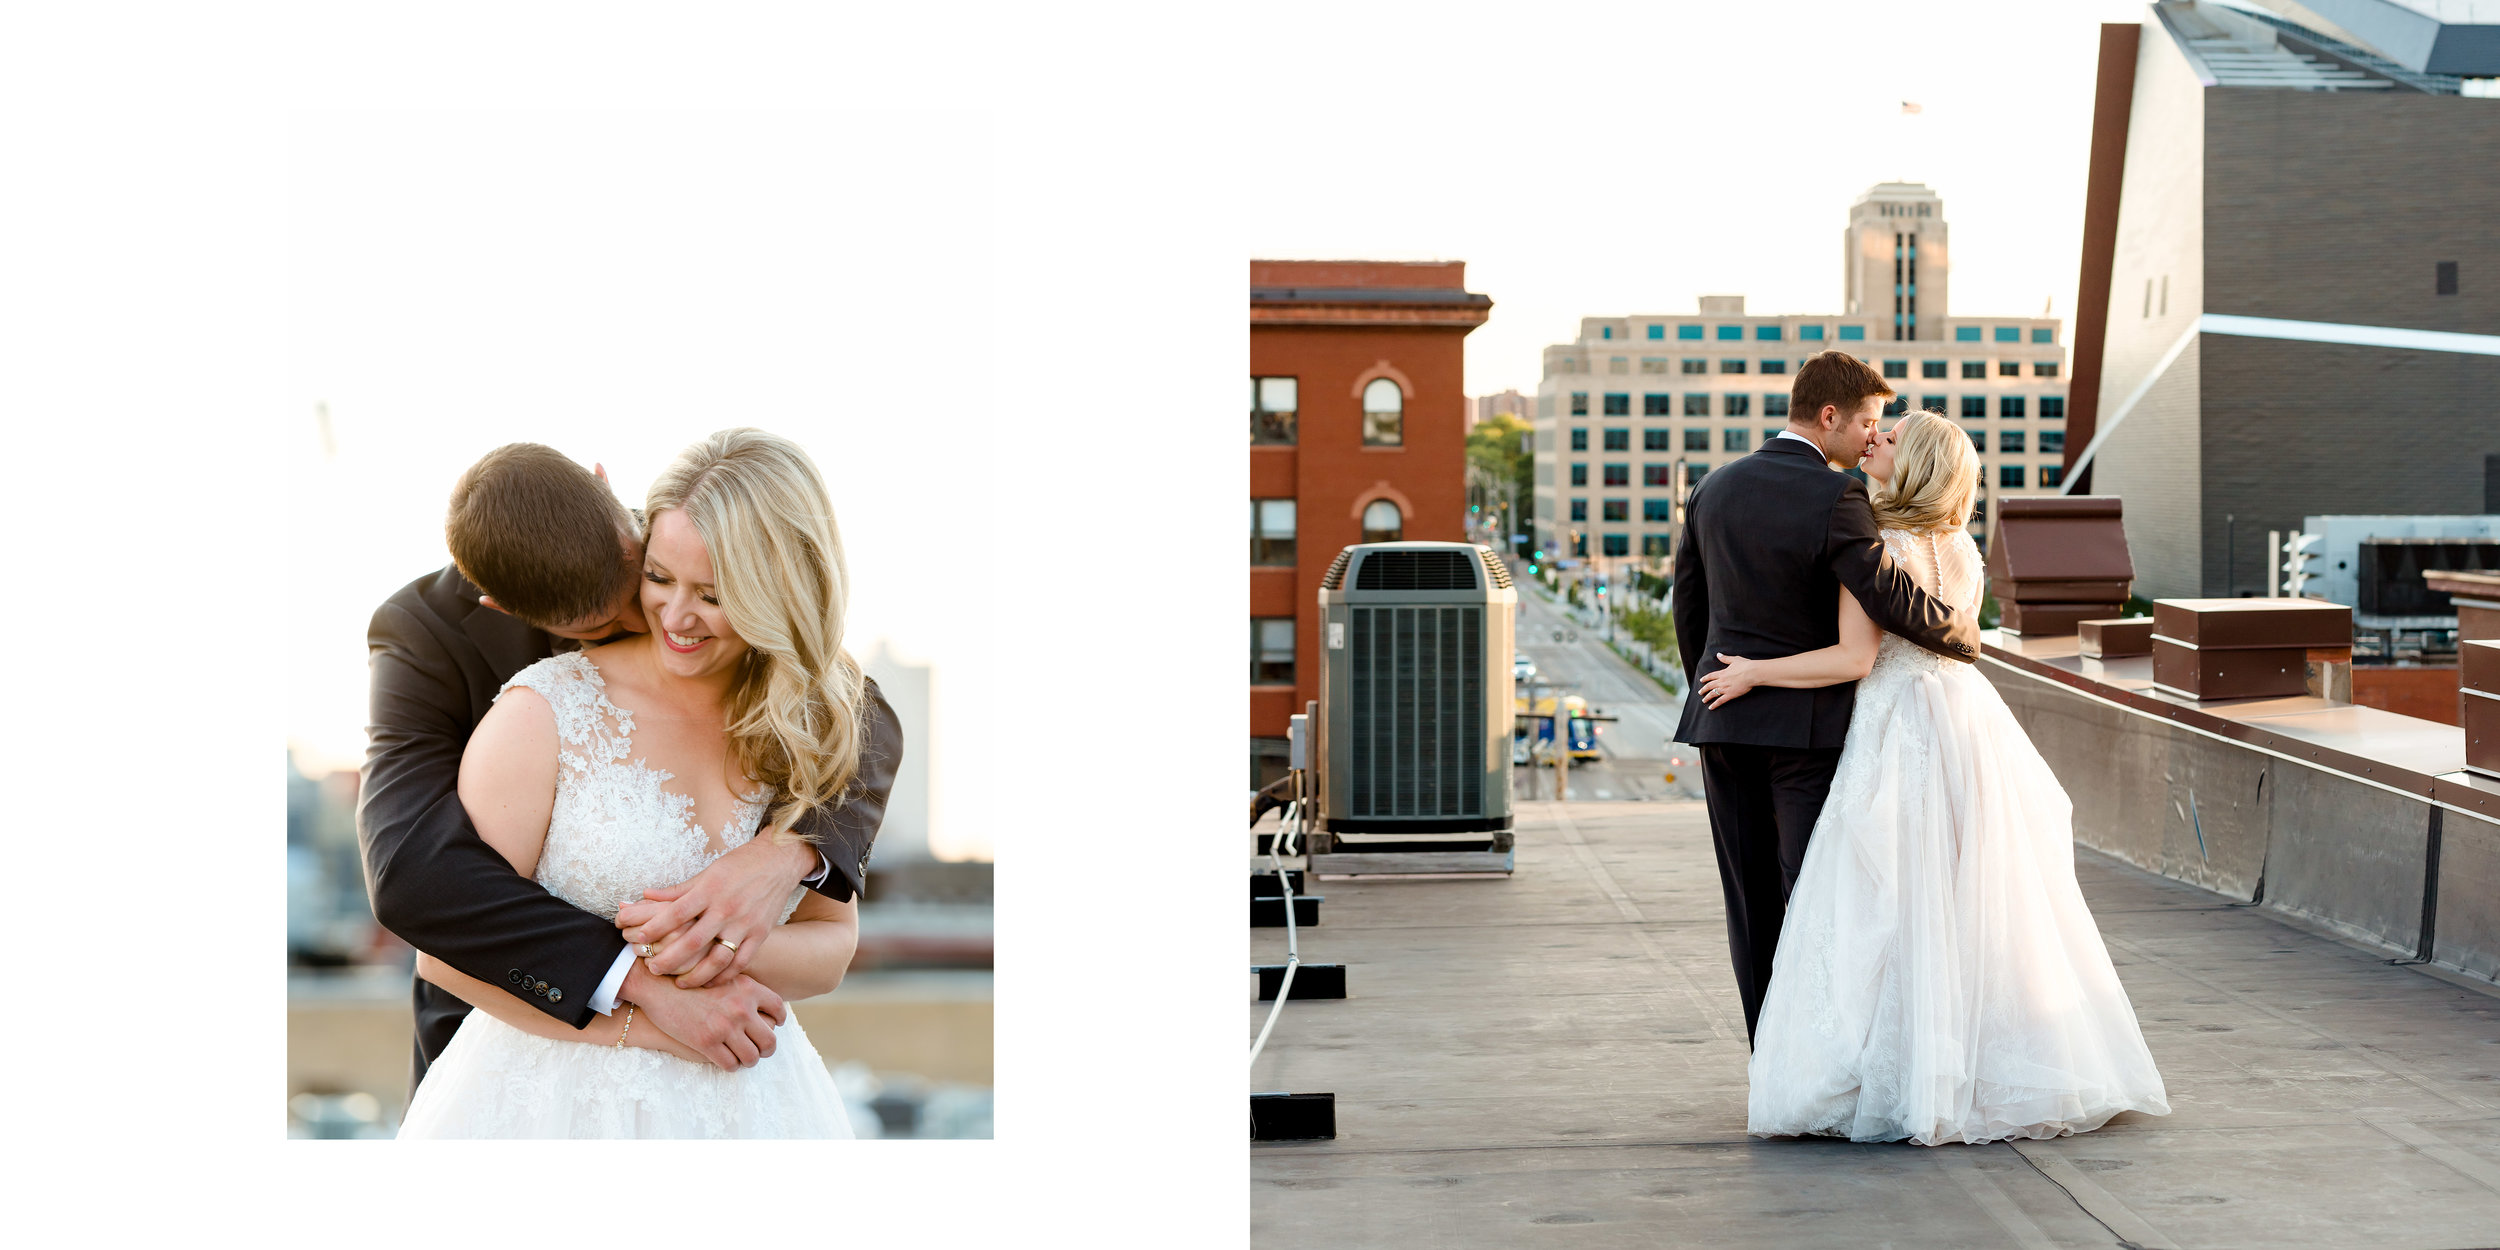 Kristen + Eric - Wedding Album Sample_33.jpg